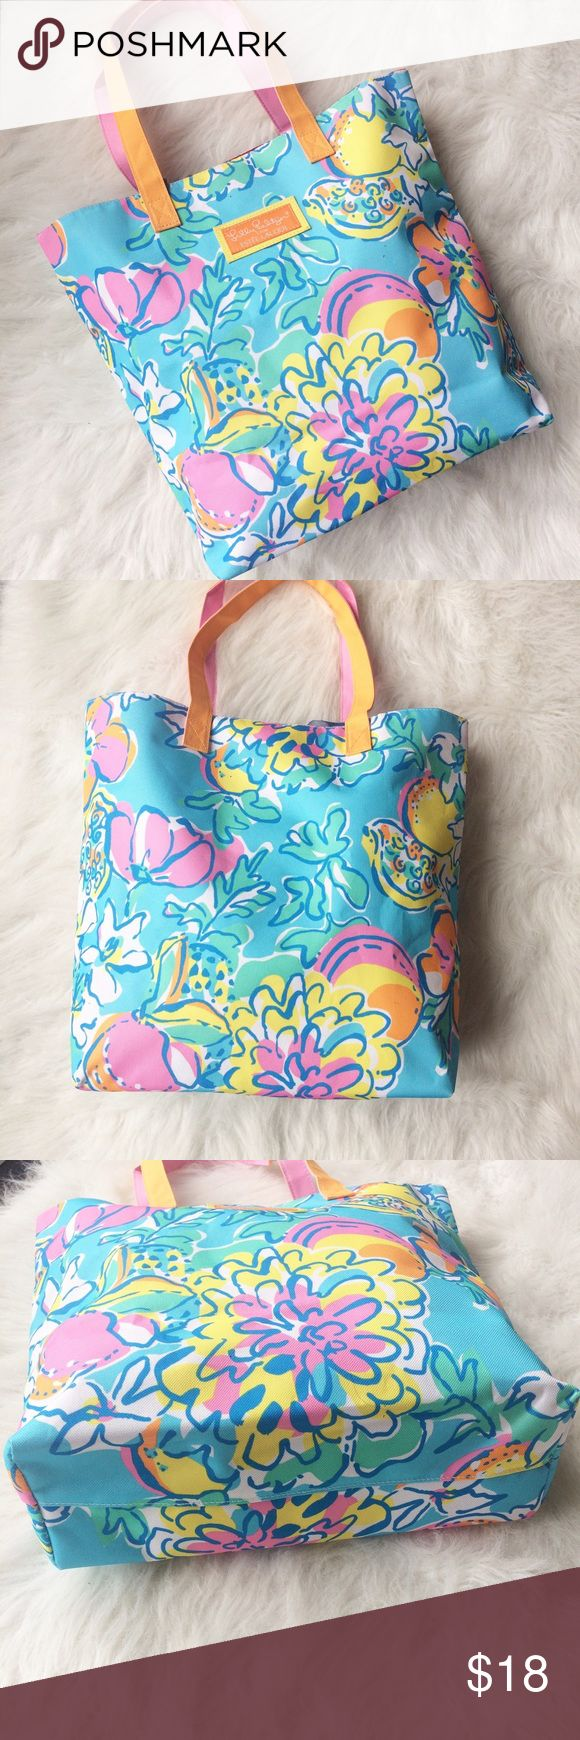 Lilly Pulitzer for Estée Lauder Tote Bag Add a little color and playfulness to your day to day life with this Lilly Pulitzer for Estée Lauder tots bag. Perfect for carrying books, groceries from farmers market or your every day essentials! In excellent condition. Height 14 inches, width 15.5 inches with a 8.5 drop. No trades, offers welcome! Lilly Pulitzer Bags Totes